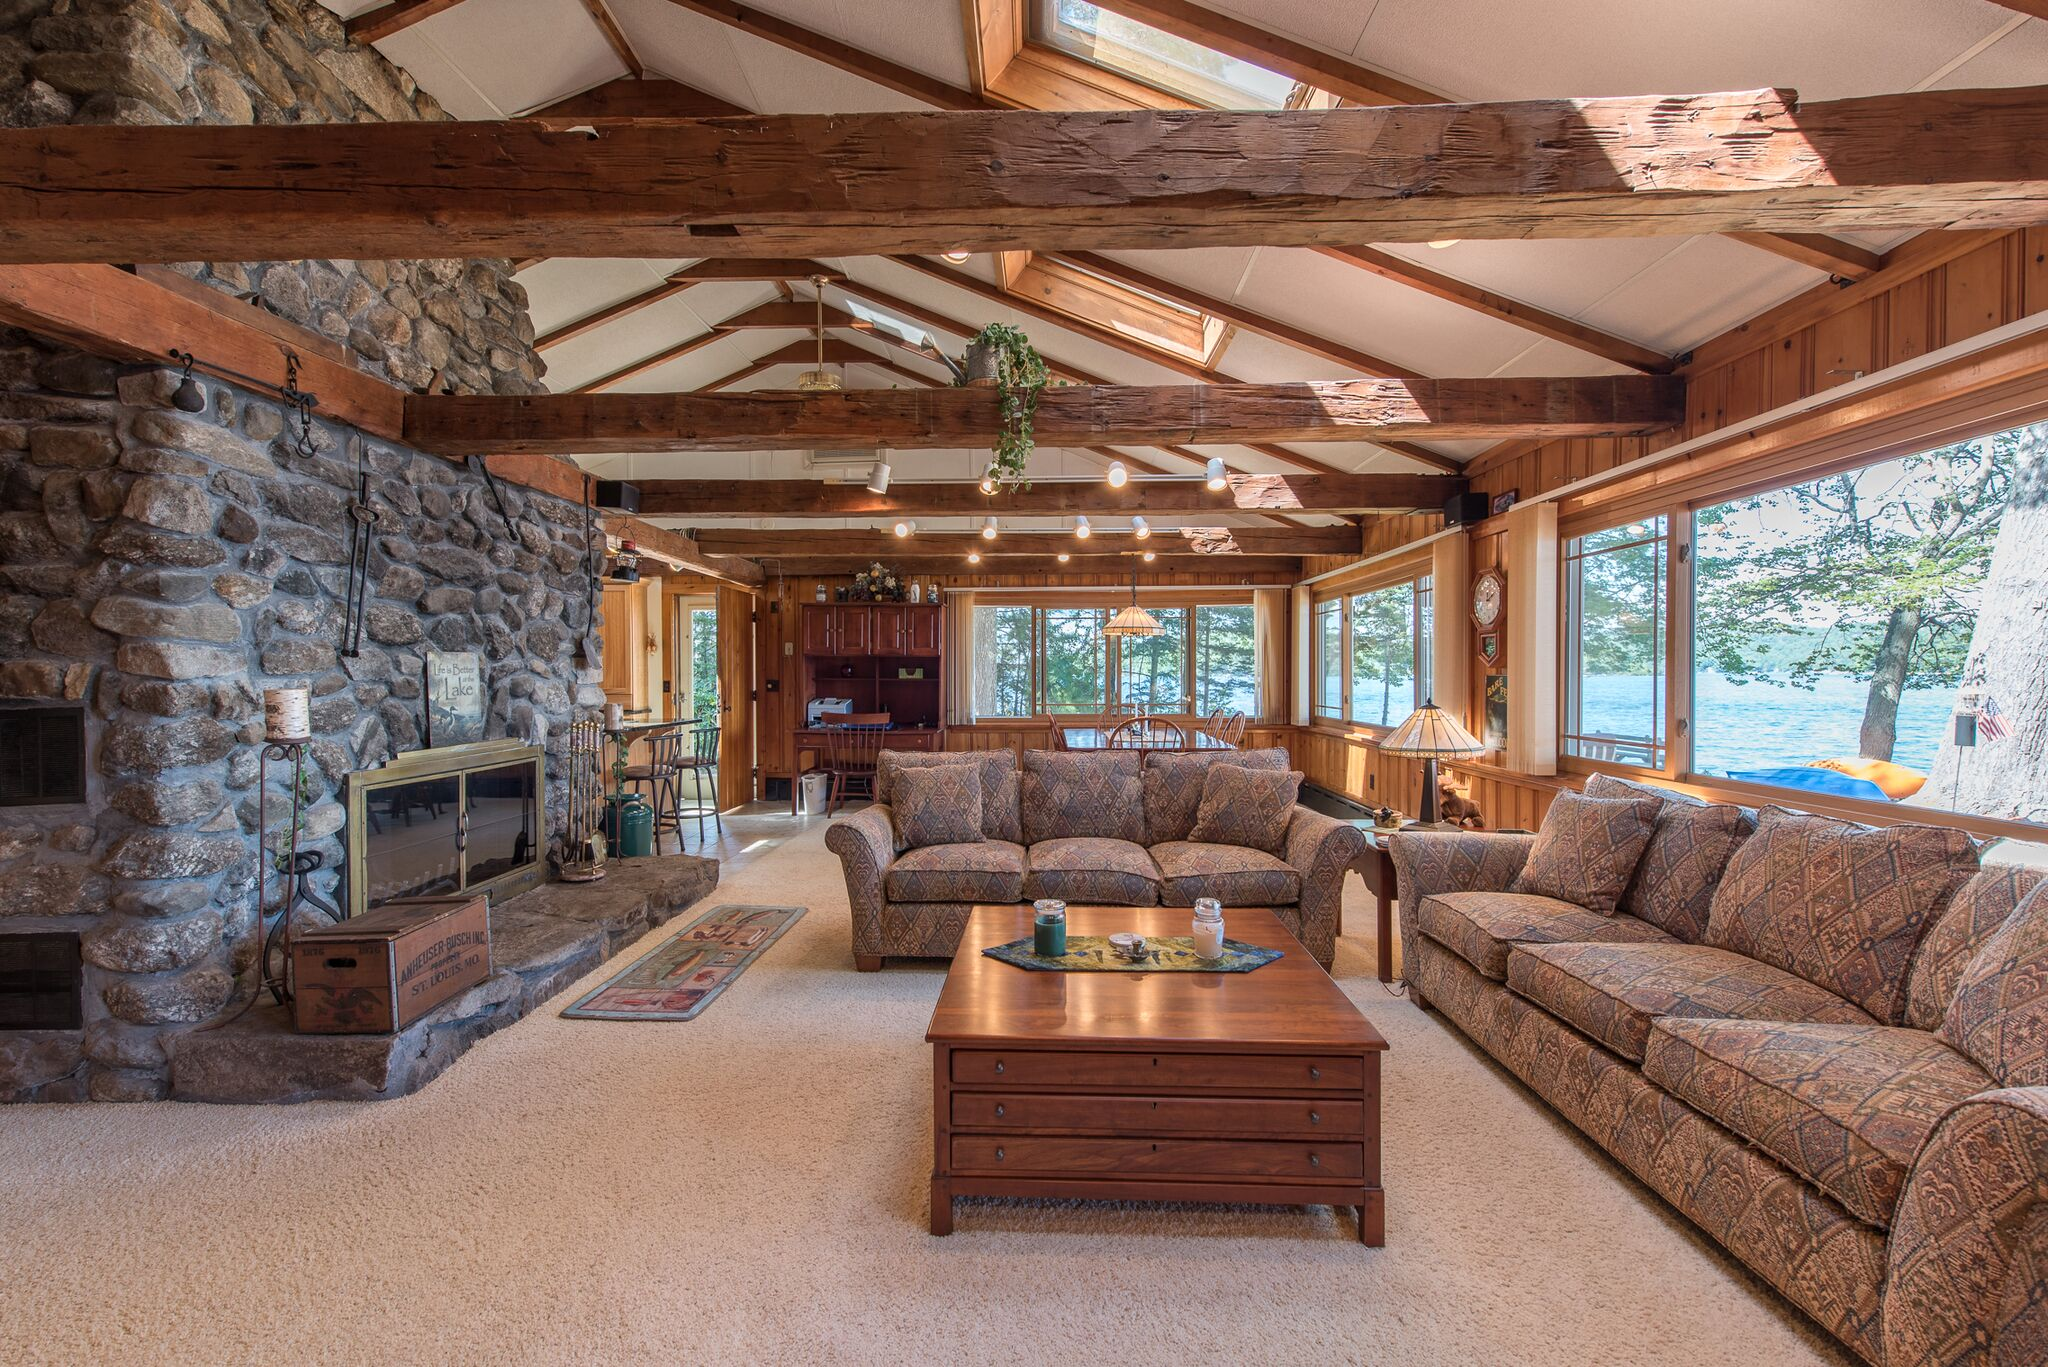 NH waterfront homes for sale - interior of a lakefront home